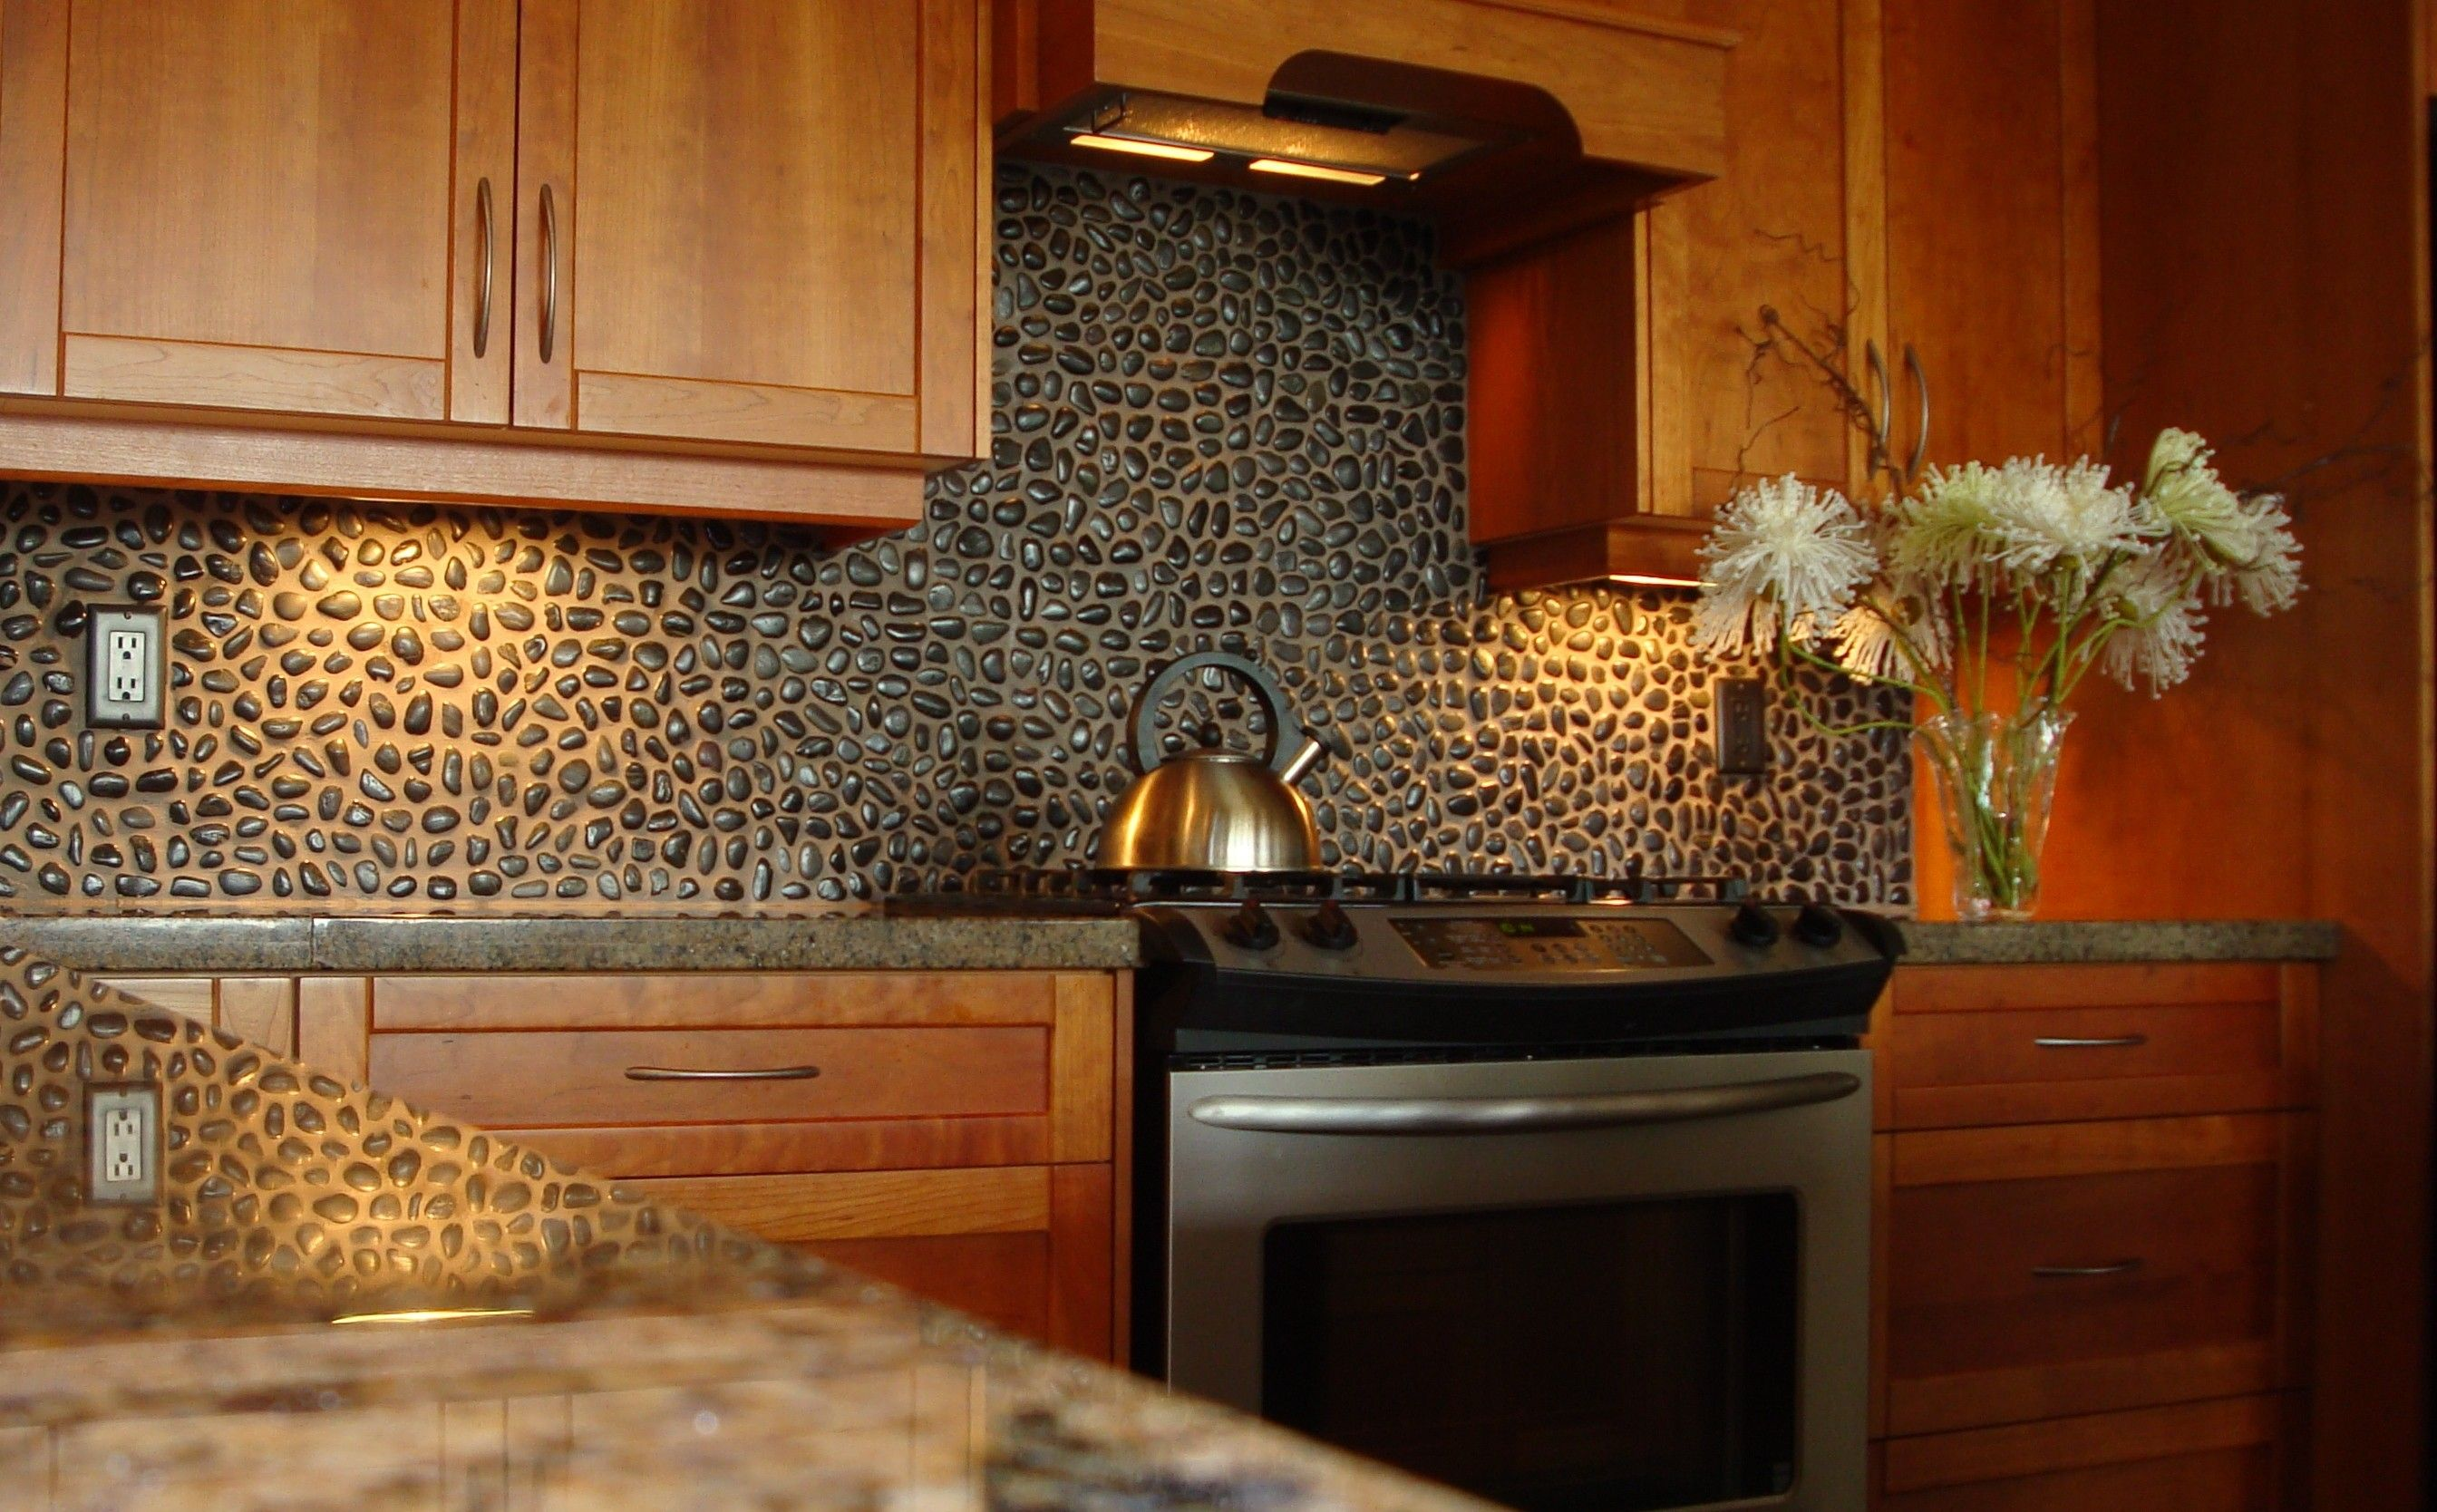 Black Stone Tile Backsplash Connected By Brown Granite ... on Backsplash For Black Granite  id=70625